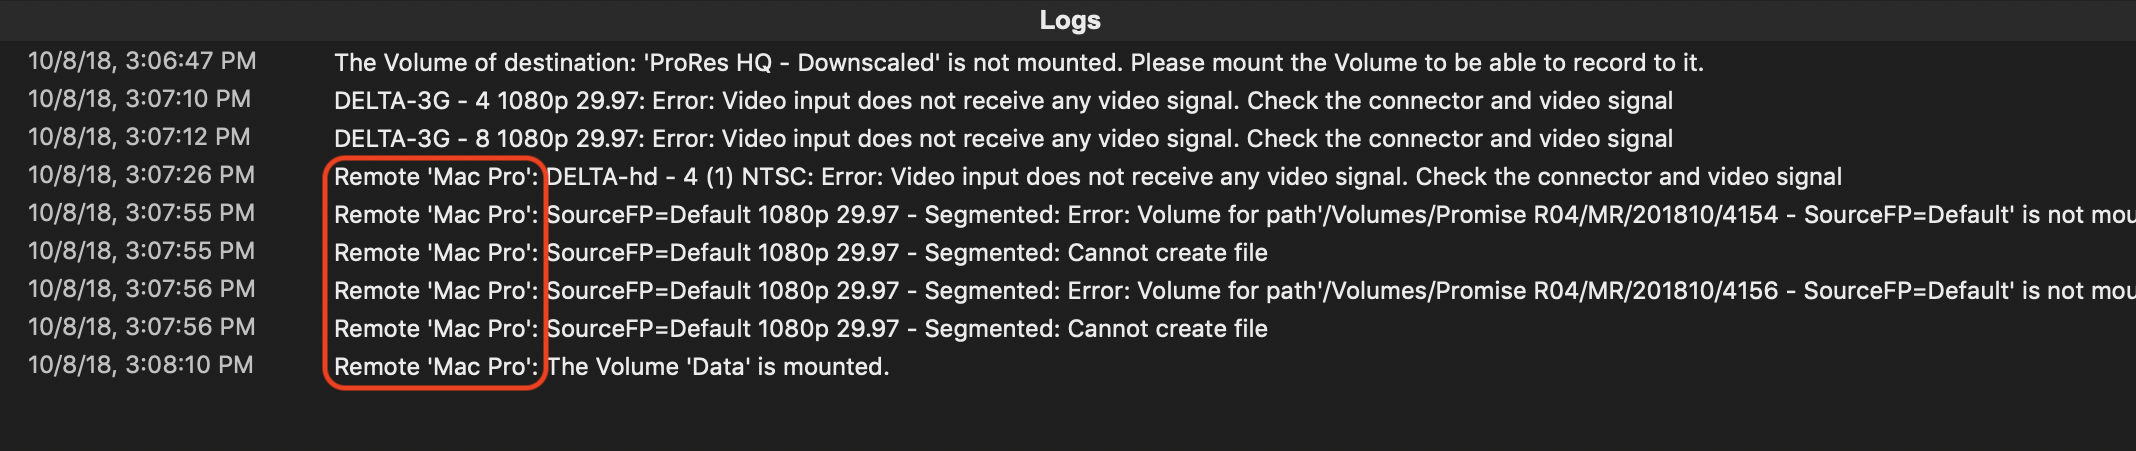 MR4_ActivityLogs_Logs_Remote.png